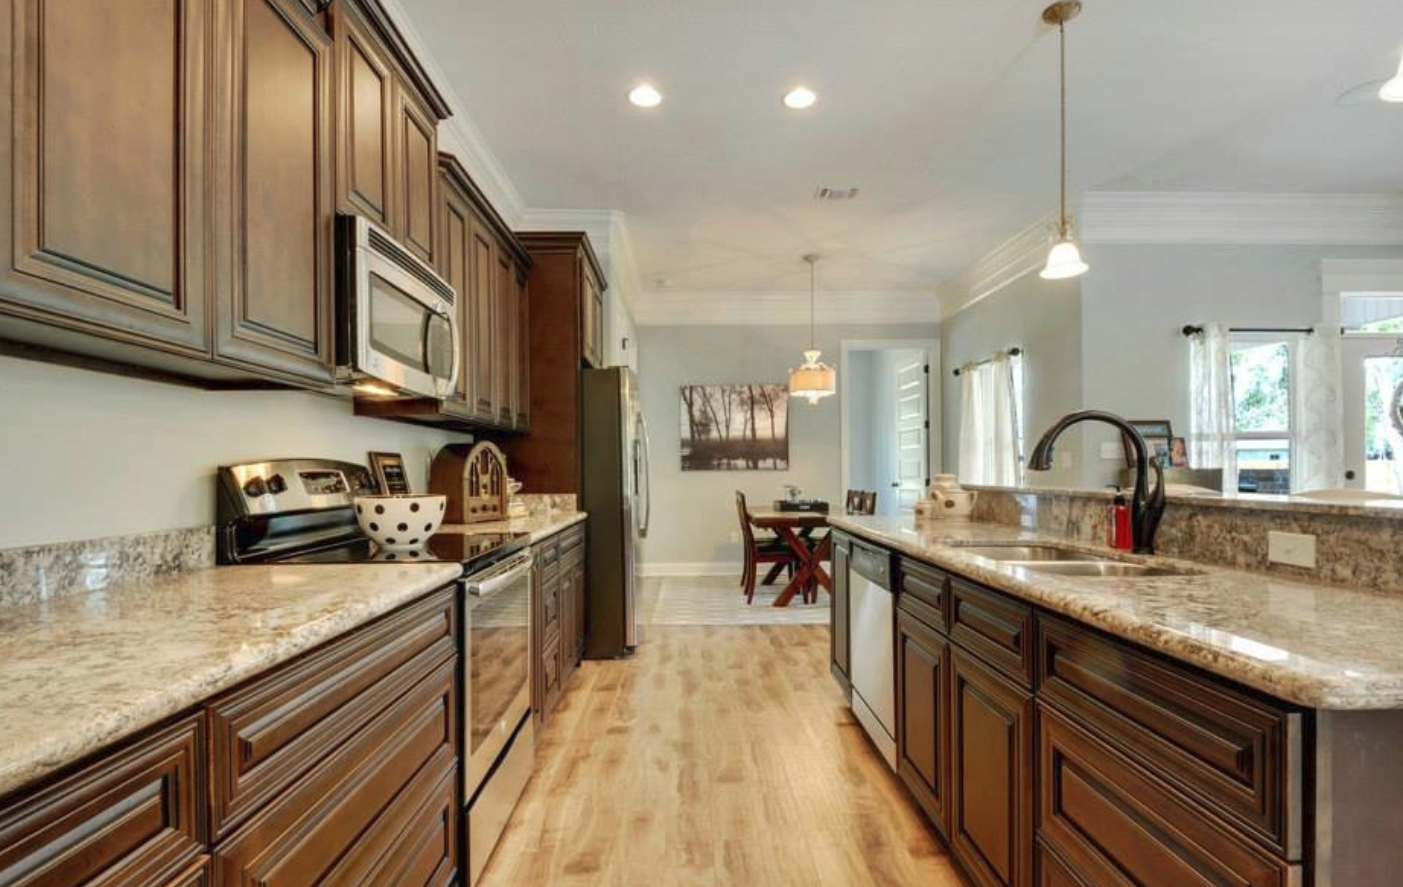 Proselect Hw Hamilton Walnut All Wood Stained Cabinets With Kalahari Gold Granite Countertop How To Remove Kitchen Cabinets Kitchen Kitchen Cabinets